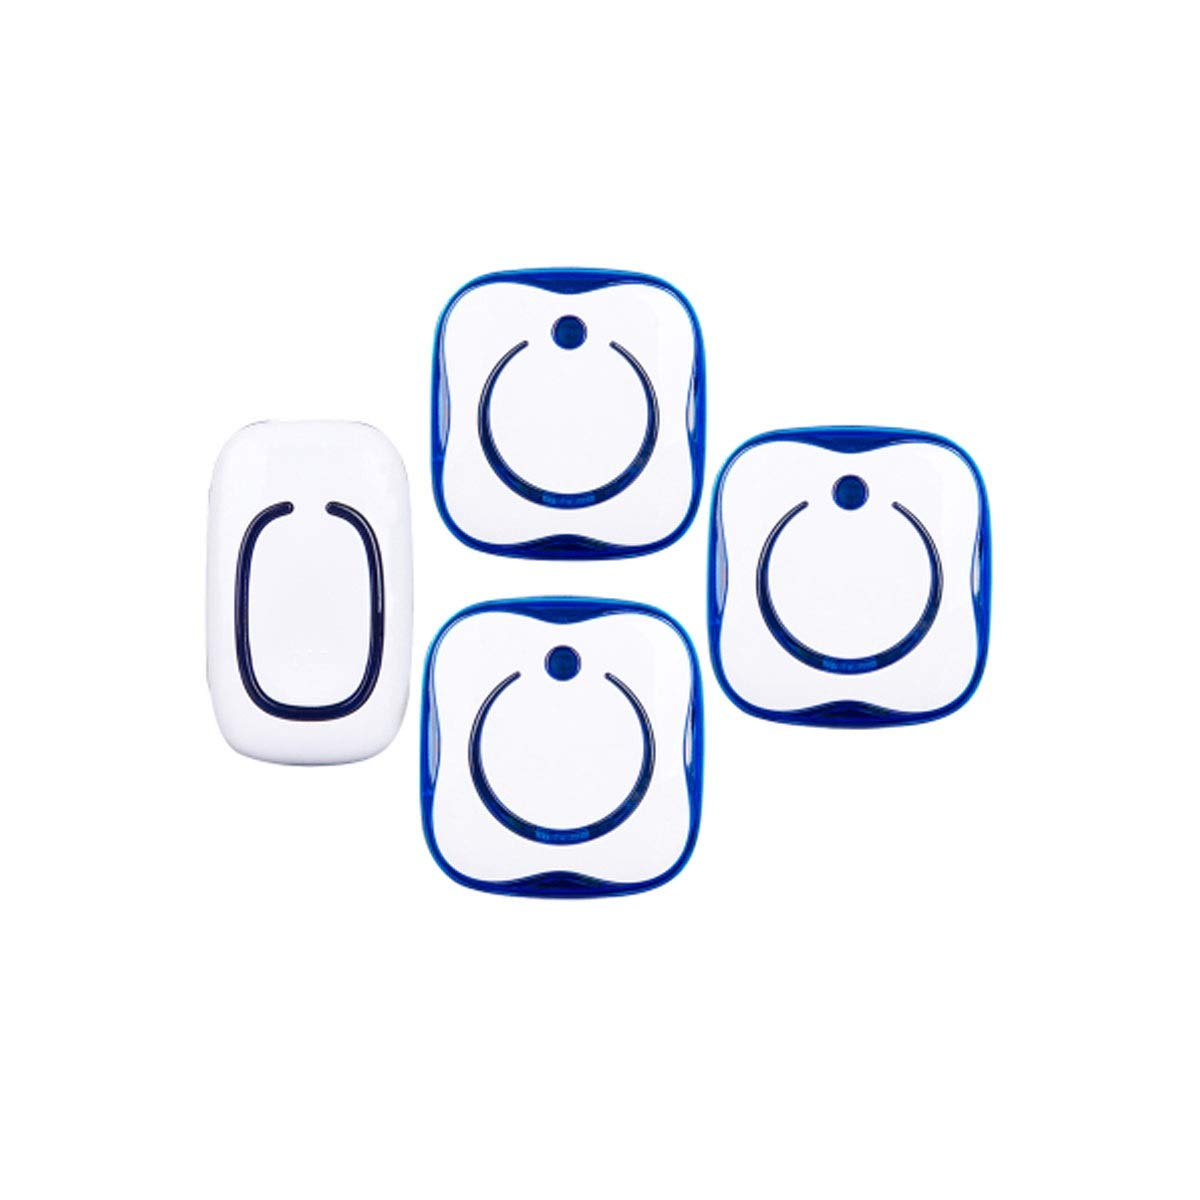 One drag three Yougou01 Doorbell, Wireless Home Super Long Doorbell, Plastic Material, Good Waterproof Quality (white) (Edition   One drag three)